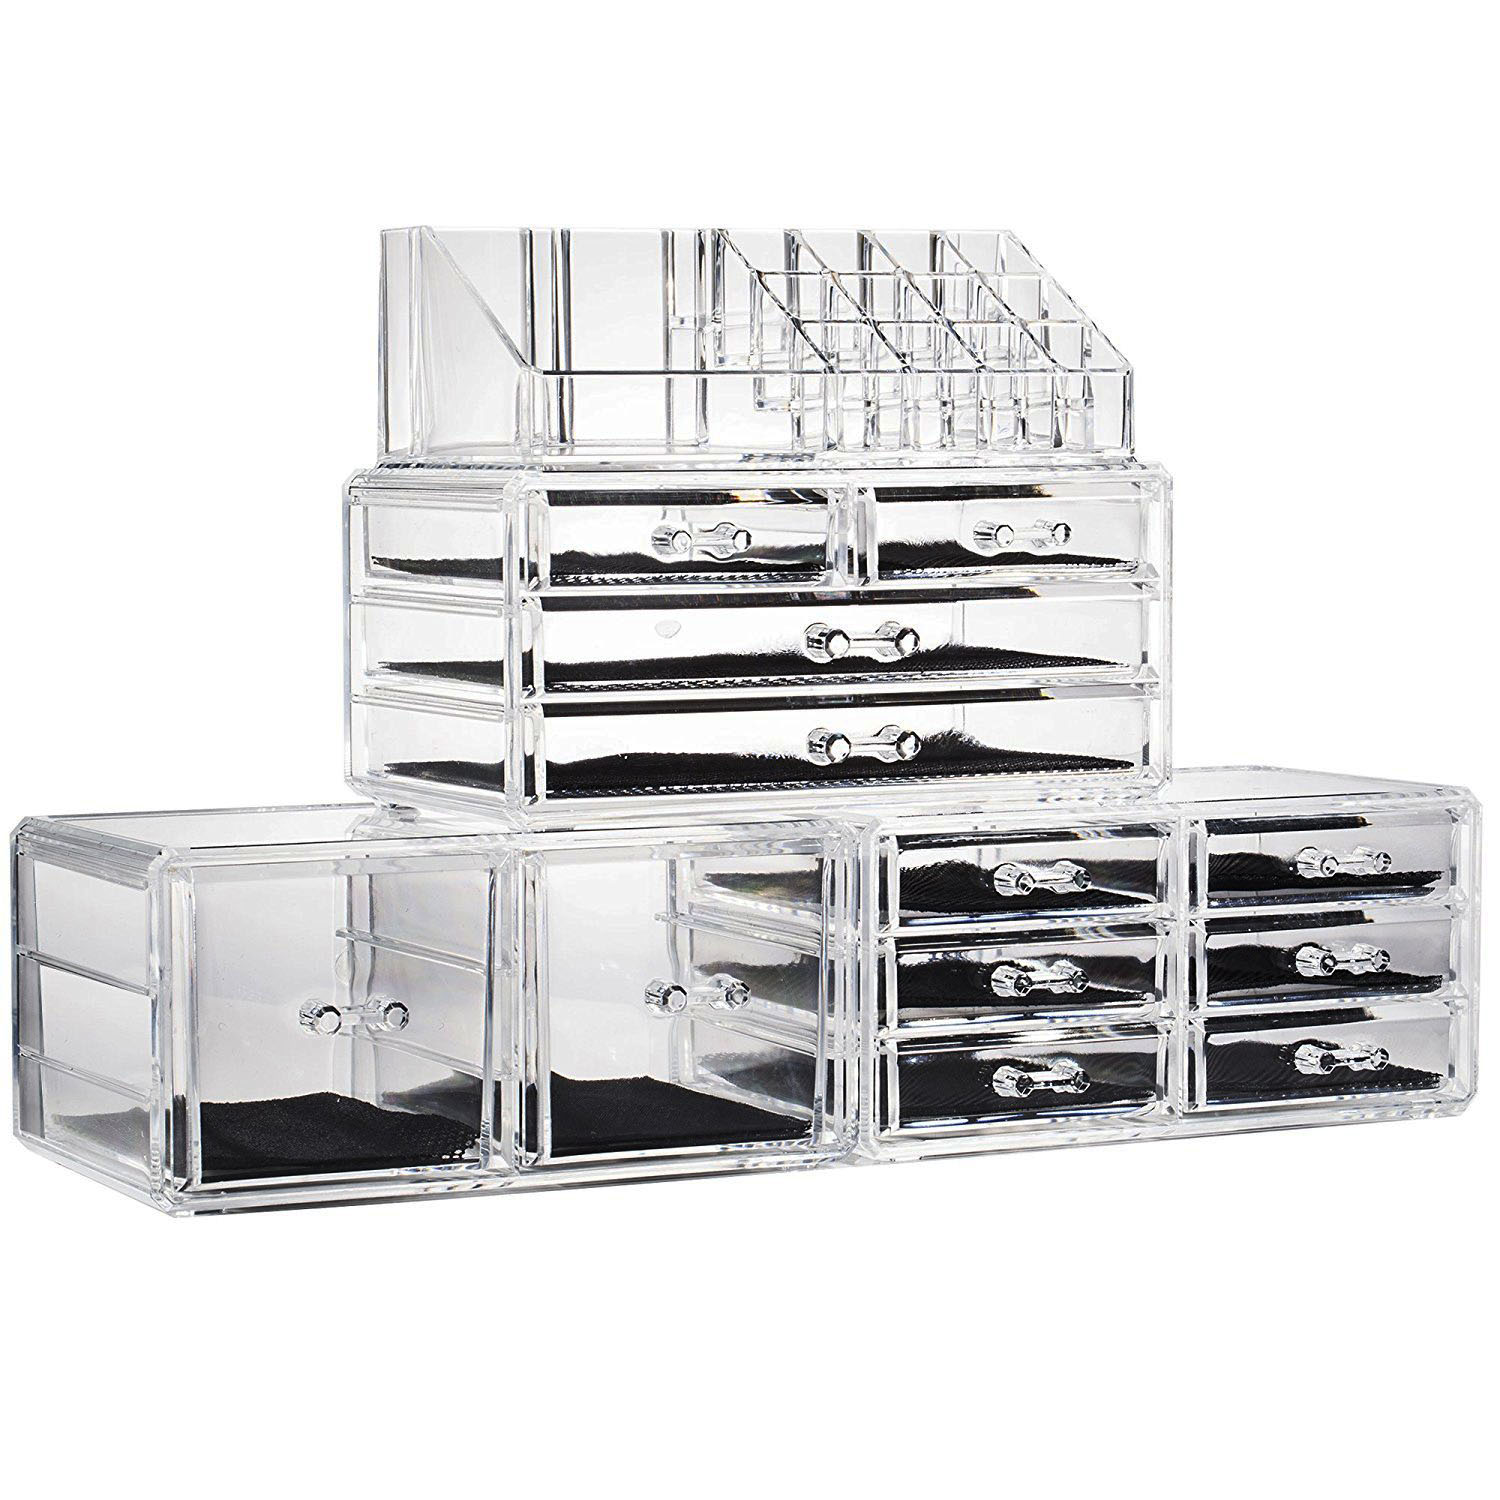 details about 12 containers drawers makeup organizer jewelry storage  acrylic case box